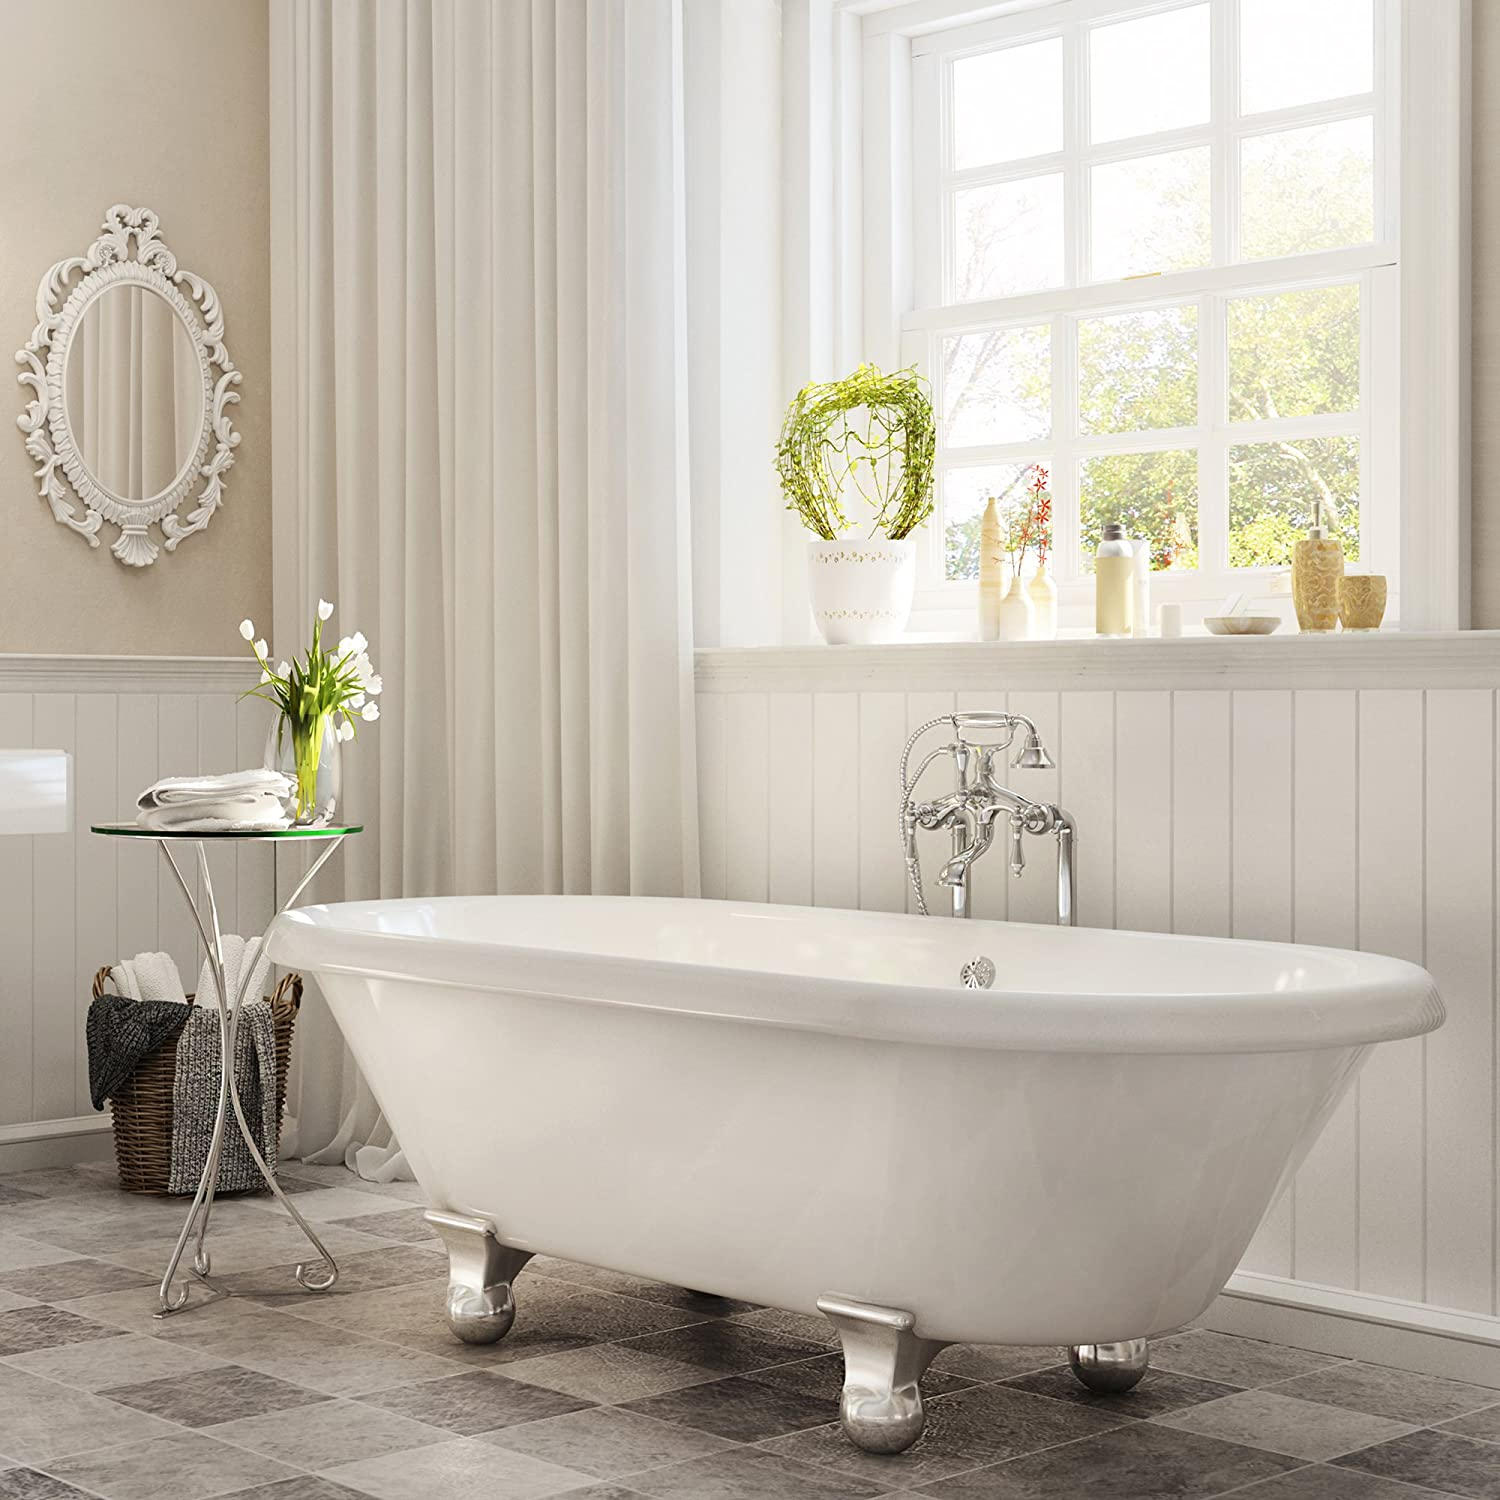 . Luxury 60 inch Modern Clawfoot Tub in White with Stand Alone Freestanding  Tub Design  includes Modern Polished Chrome Cannonball Feet and Drain  from